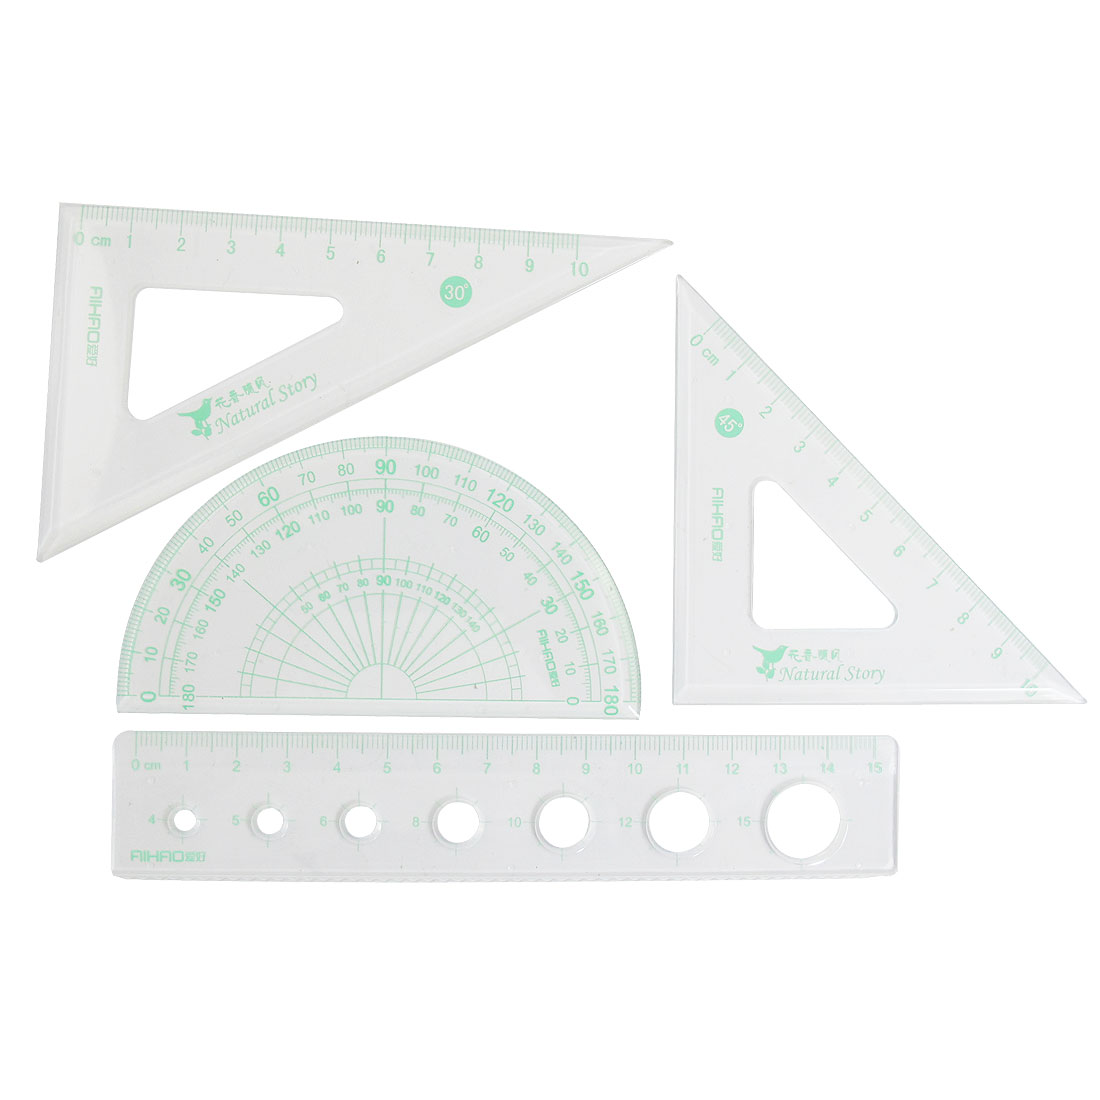 Clear Green 4 in 1 Students Plastic Stationery Ruler Protractor w Bag